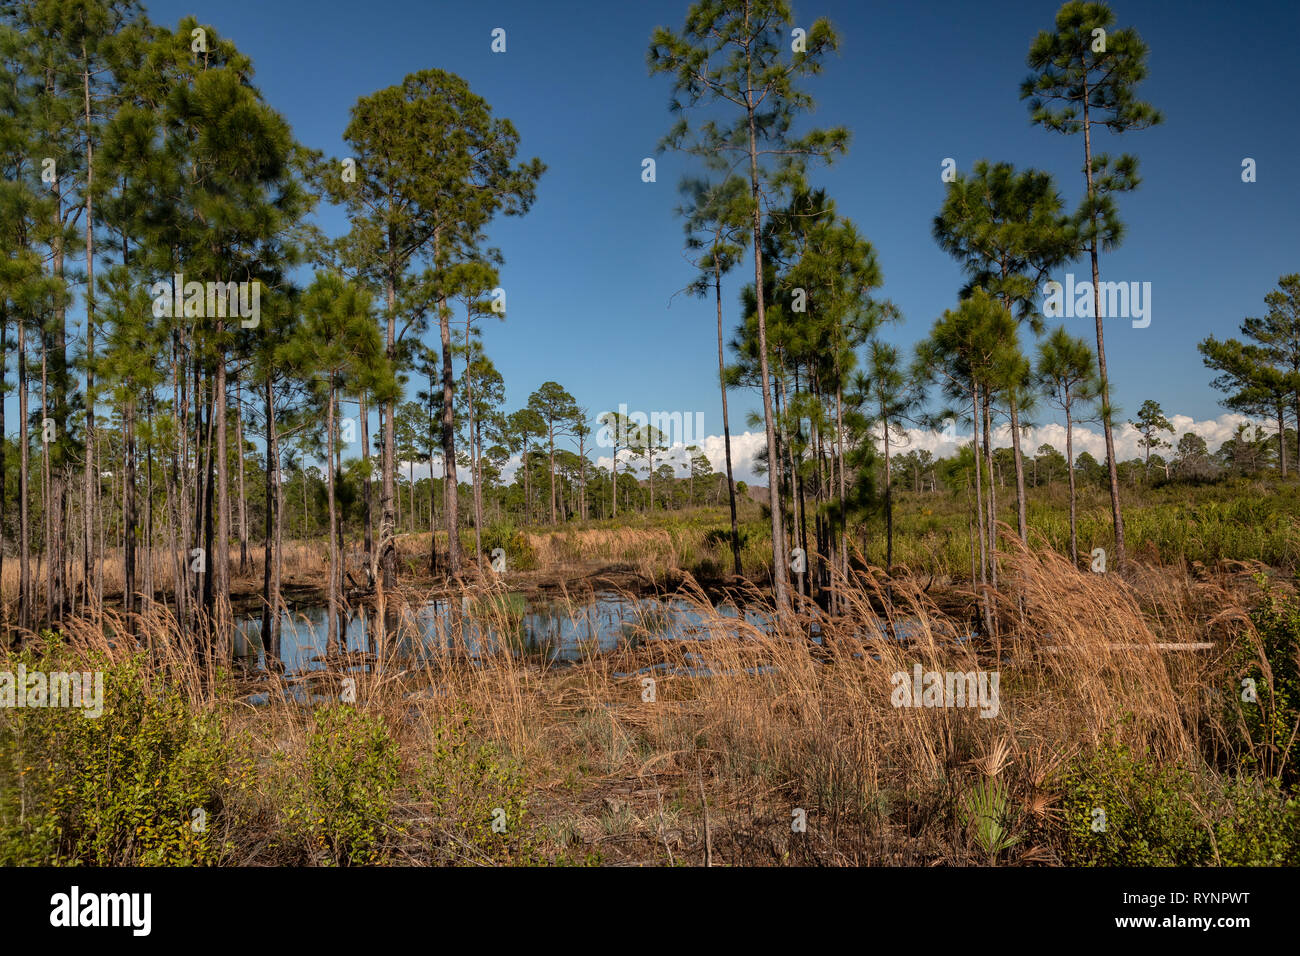 Pine flatwoods and scrub, in Cedar Key Scrub State Reserve, with Slash Pine trees. Florida. - Stock Image